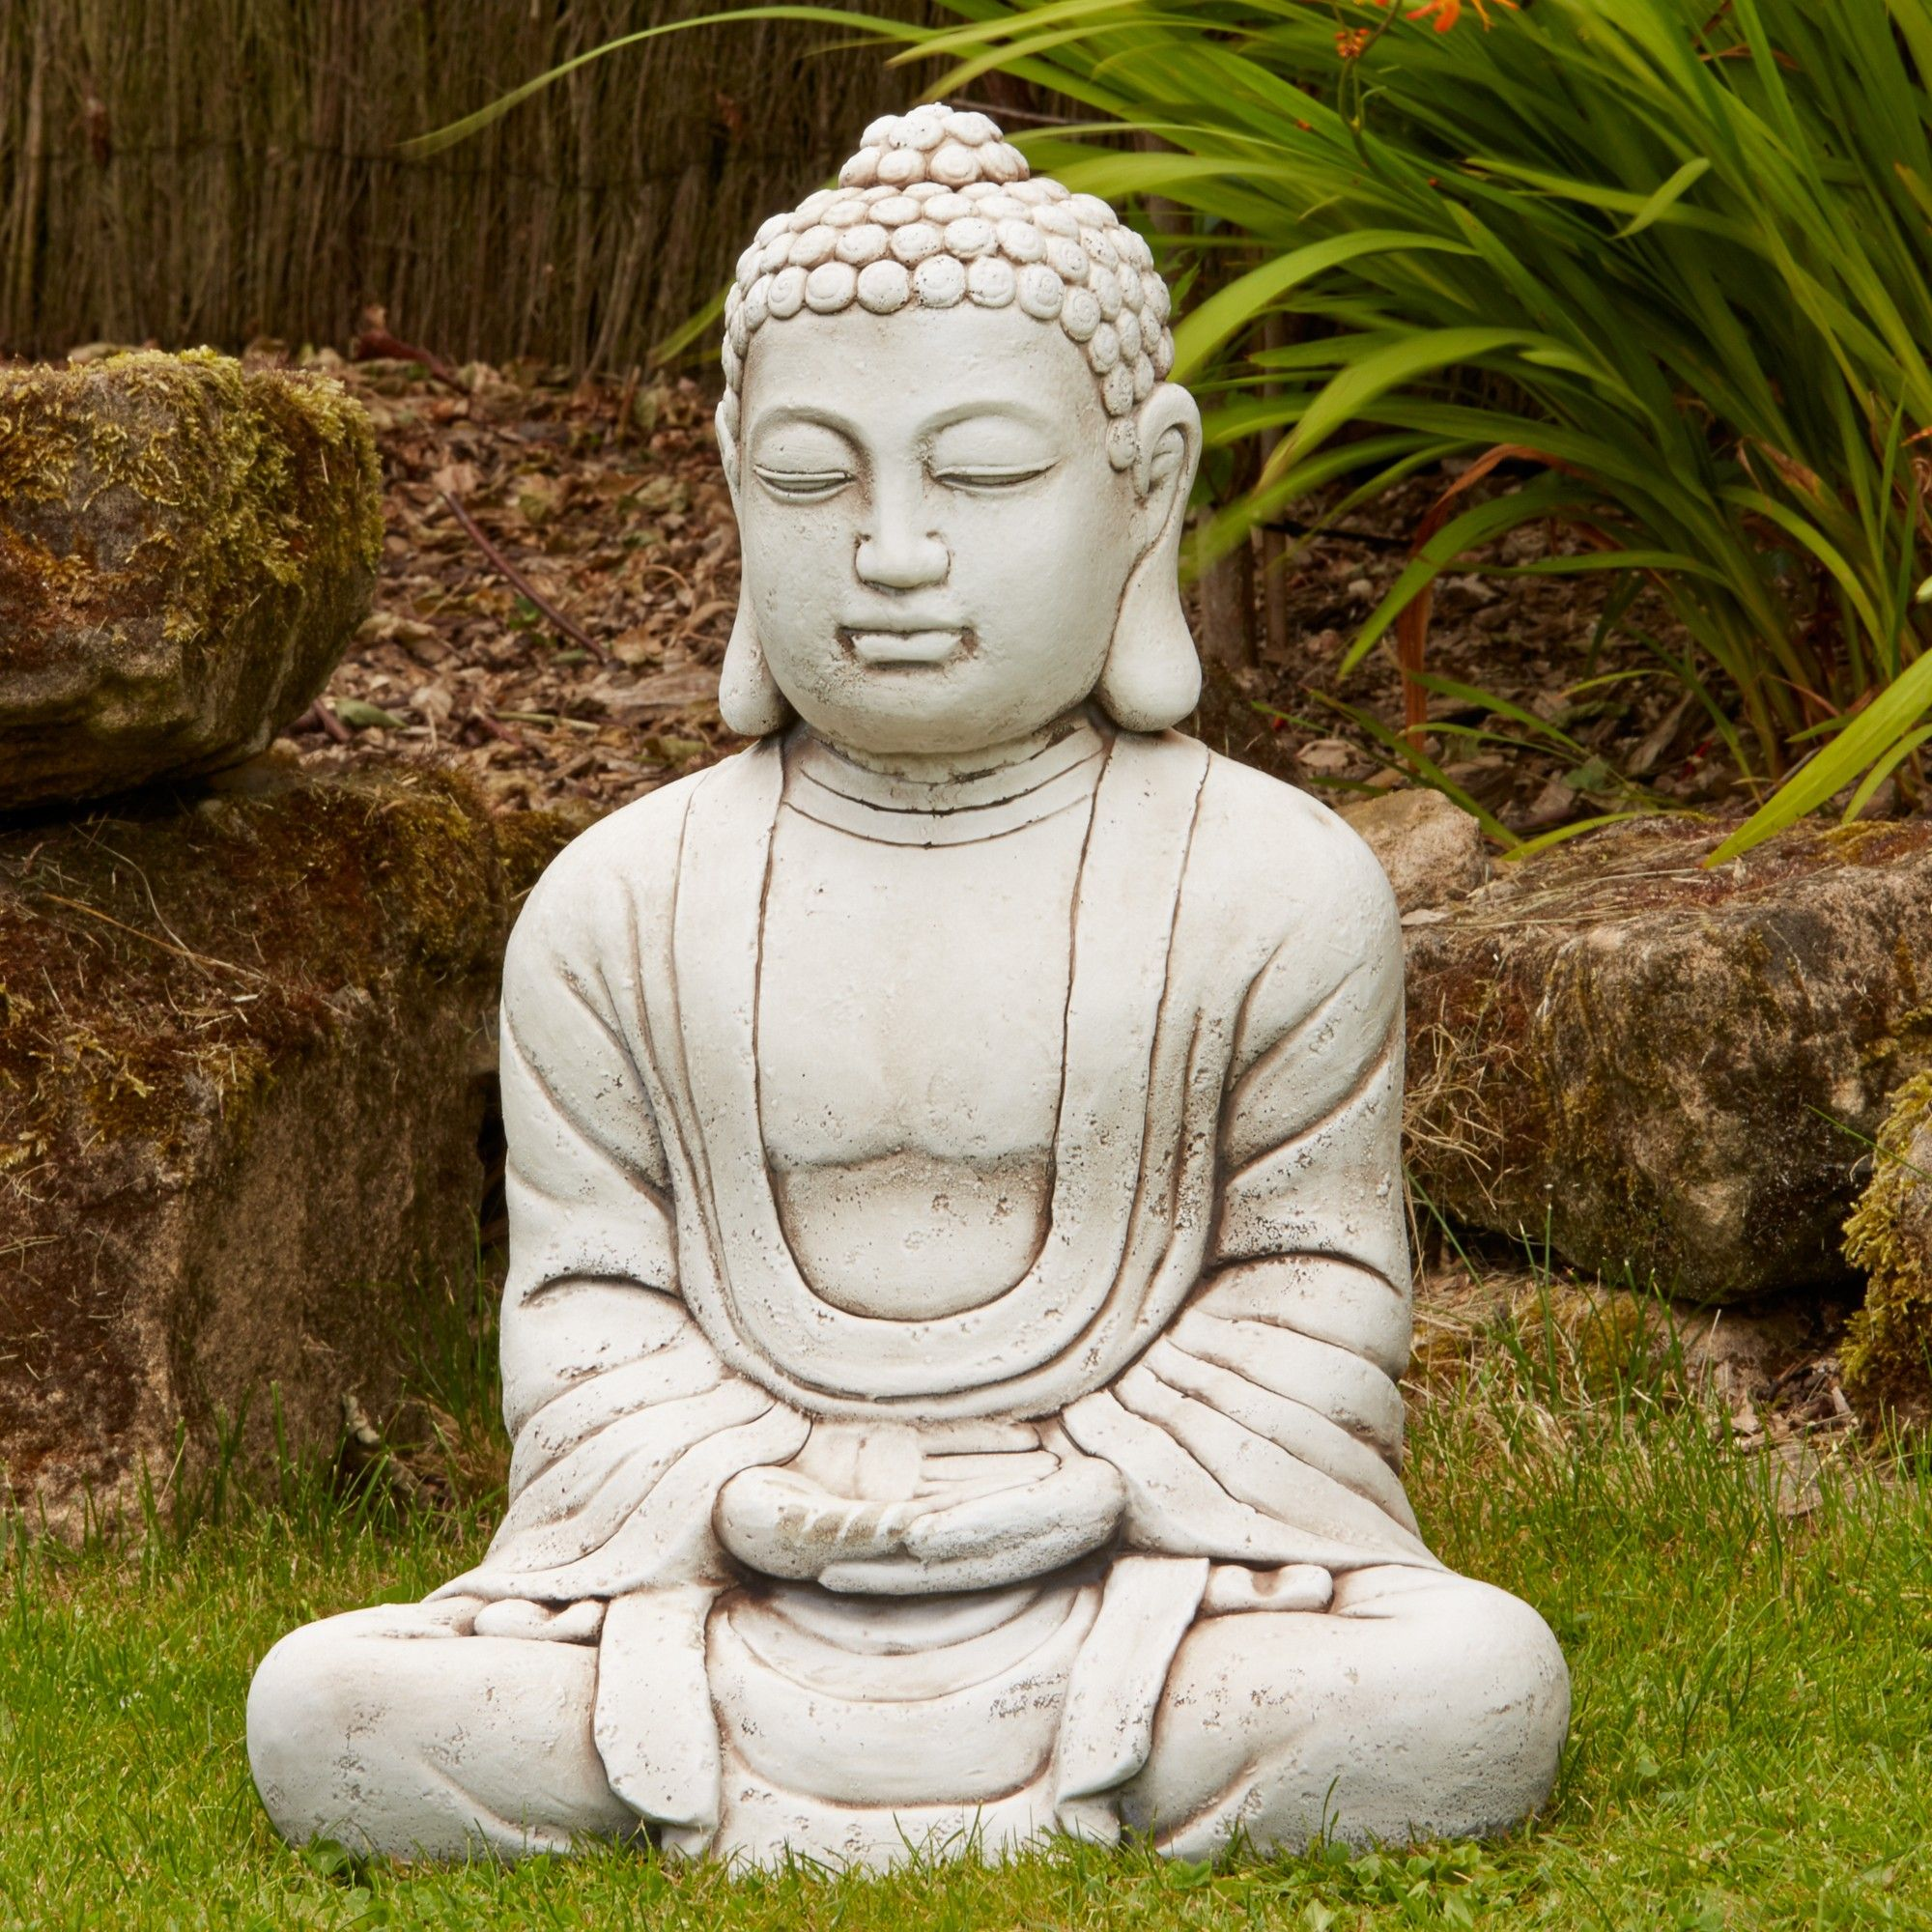 View The Hindu Stone Buddha Statue   Large Garden Ornament. Or See Our Full  Range Of Exquisite Unique To Statues U0026 Sculptures Online.